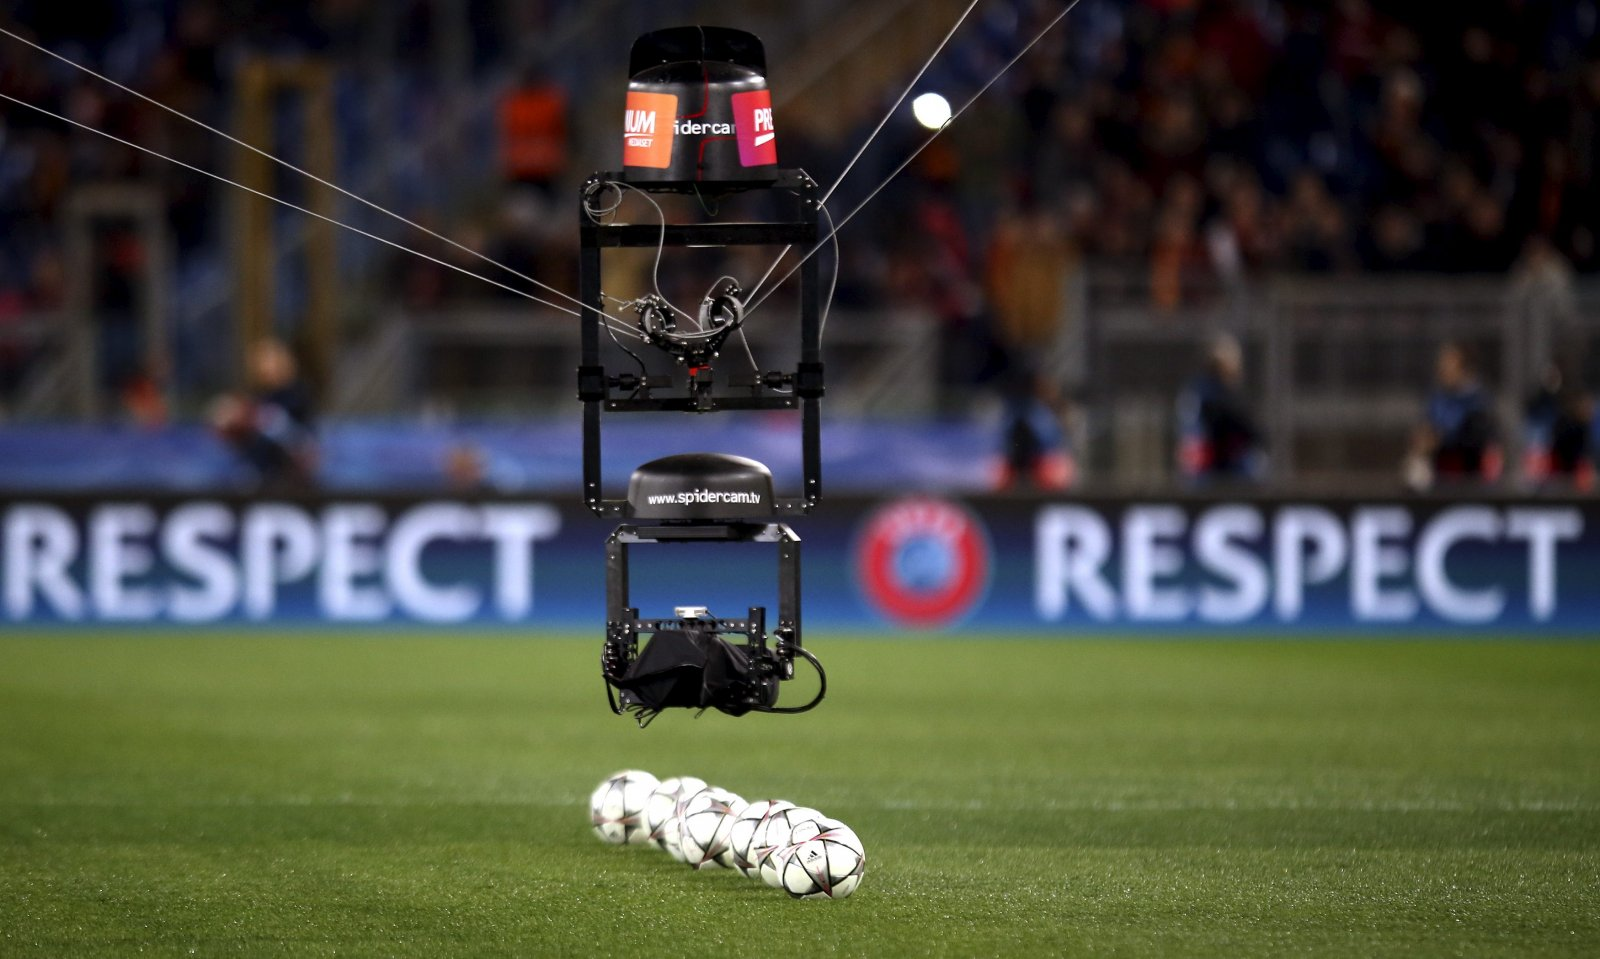 Spider TV Camera before a UEFA Champions League match